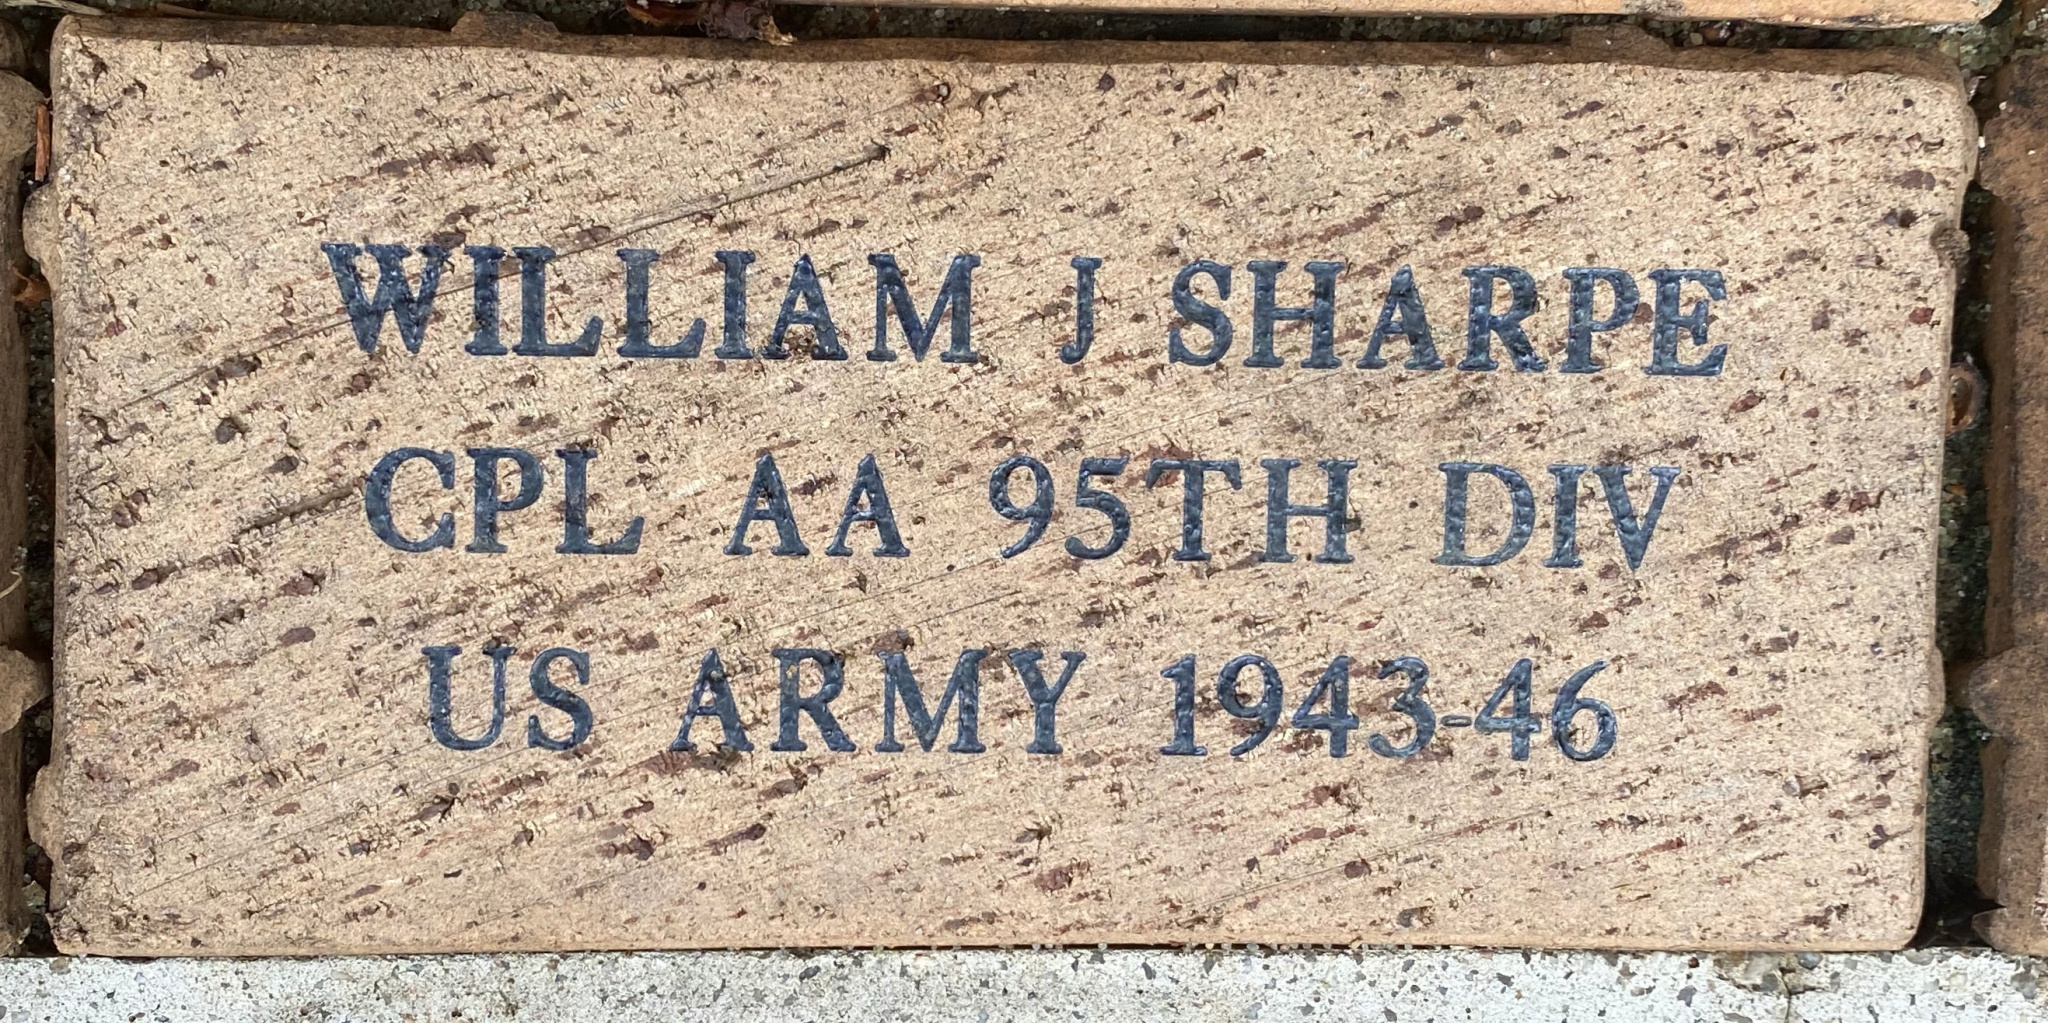 WILLIAM J SHARPE CPL AA 95TH DIV US ARMY 1943-46